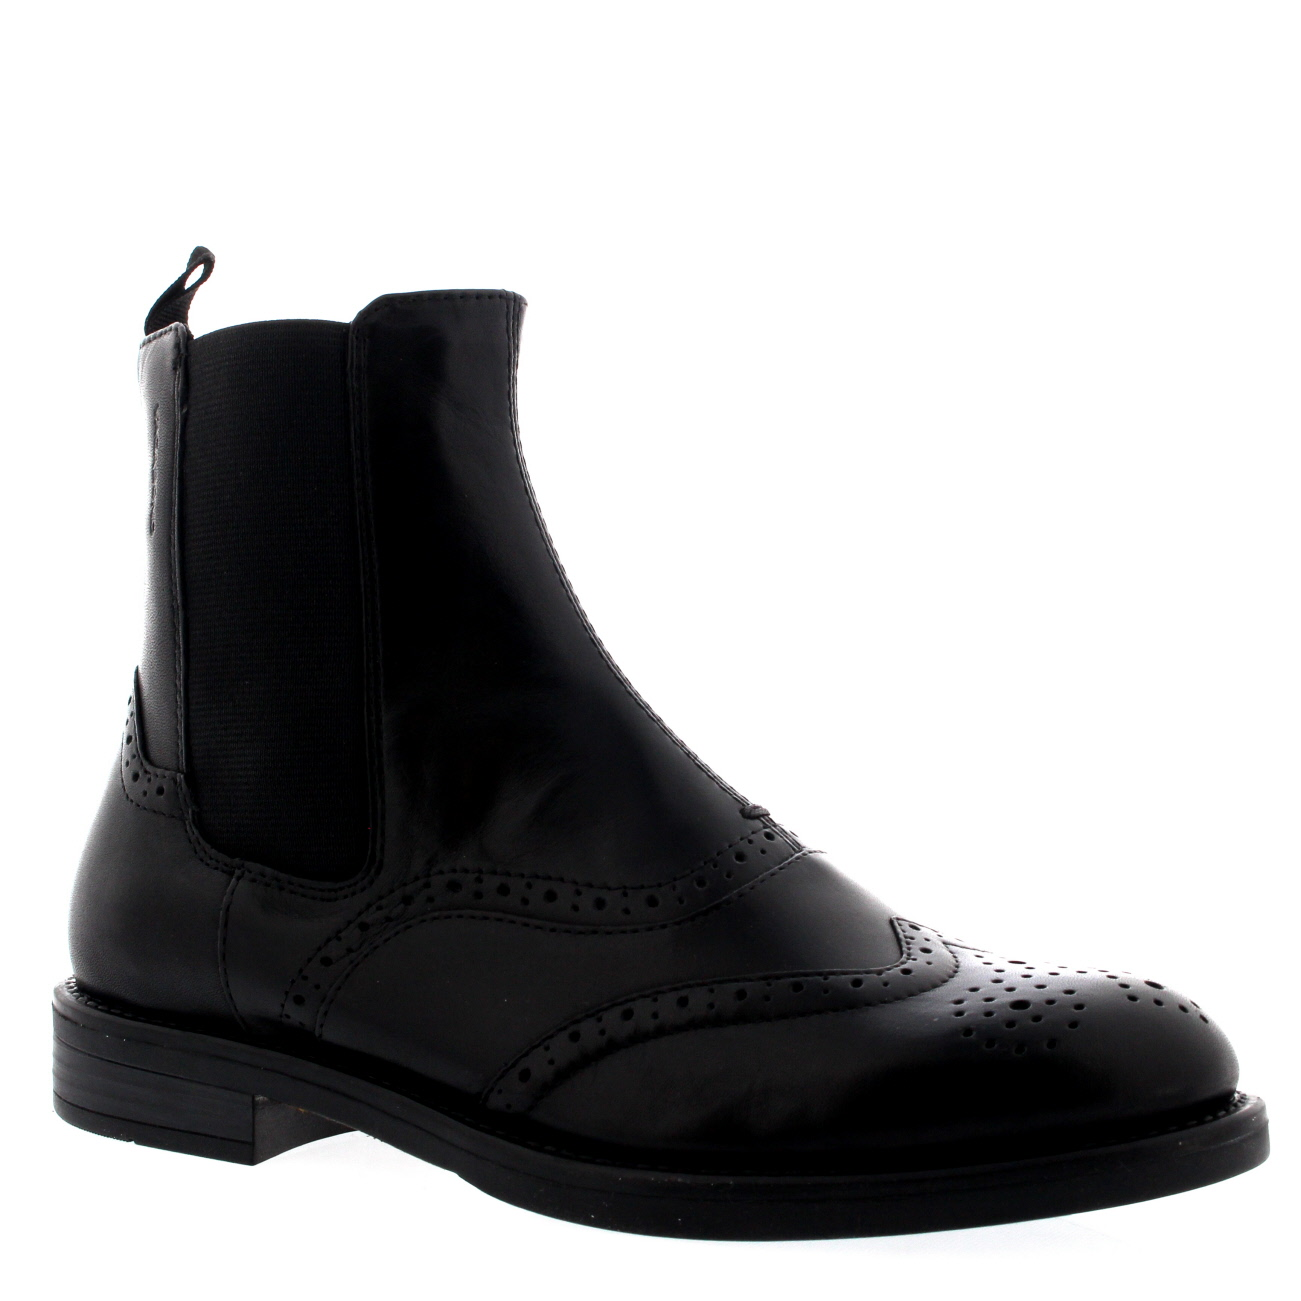 Unique 9 Lessons Iu2019ve Learned From Black Leather Chelsea Boots Ladies U2013 Blackbylozanne.com